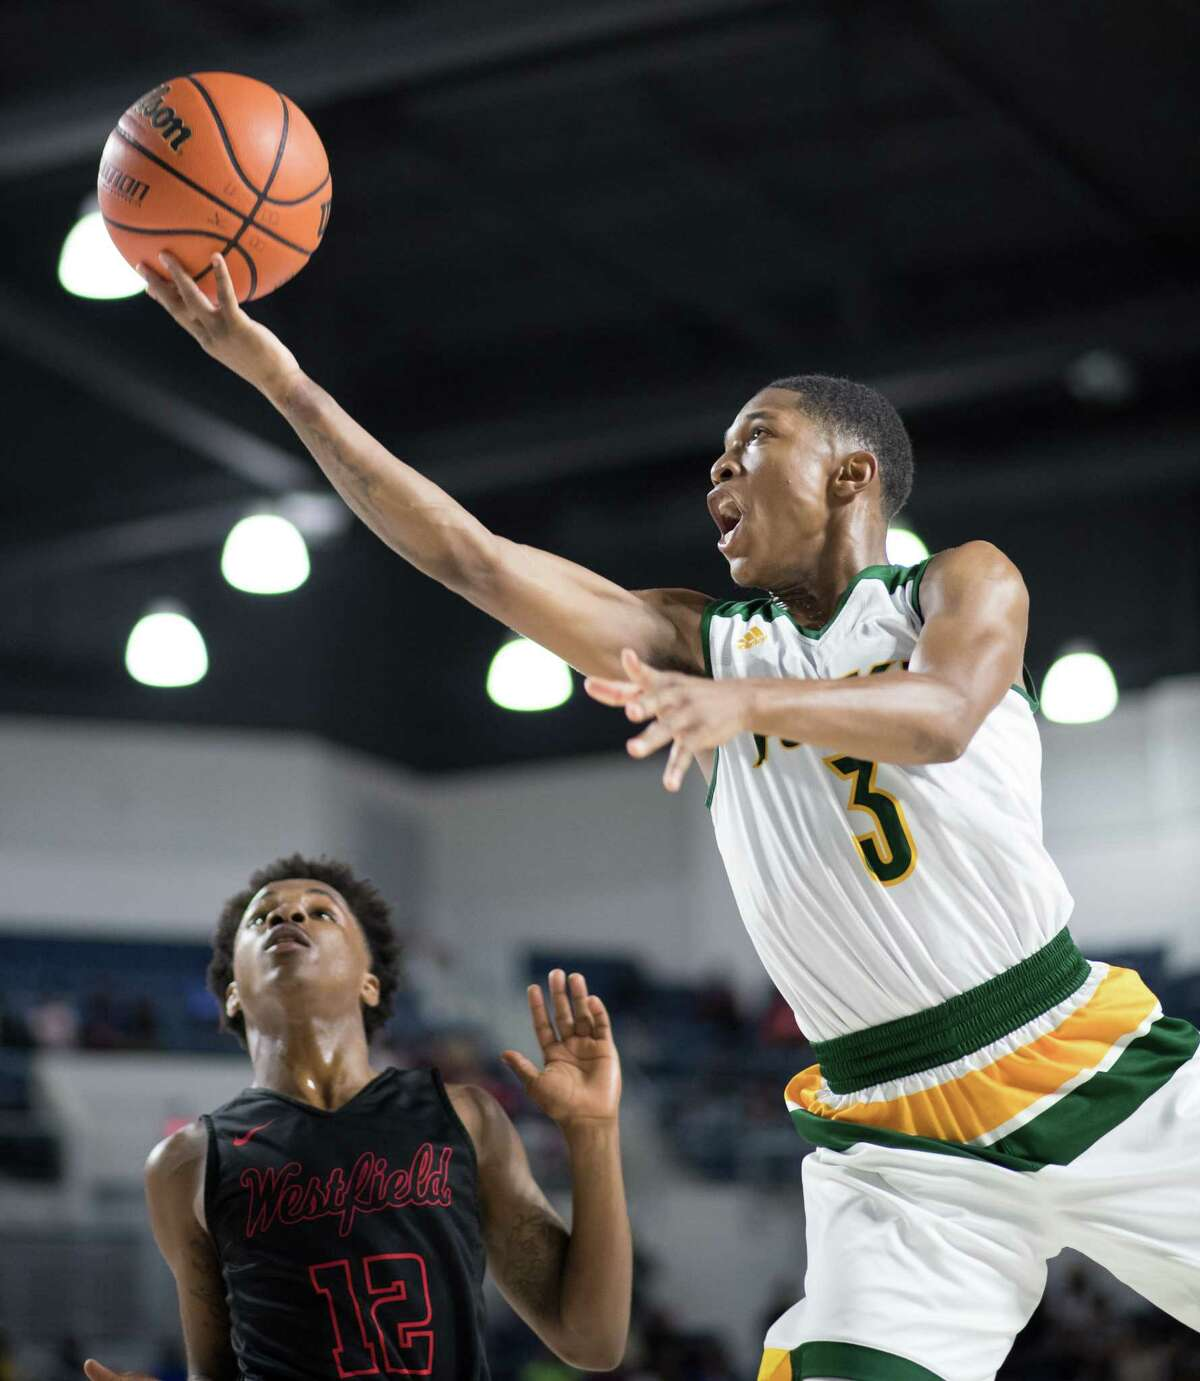 Taj Simmons and Klein Forest overcame being shorthanded to top Westfield in their regional quarterfinal matchup earlier this week.